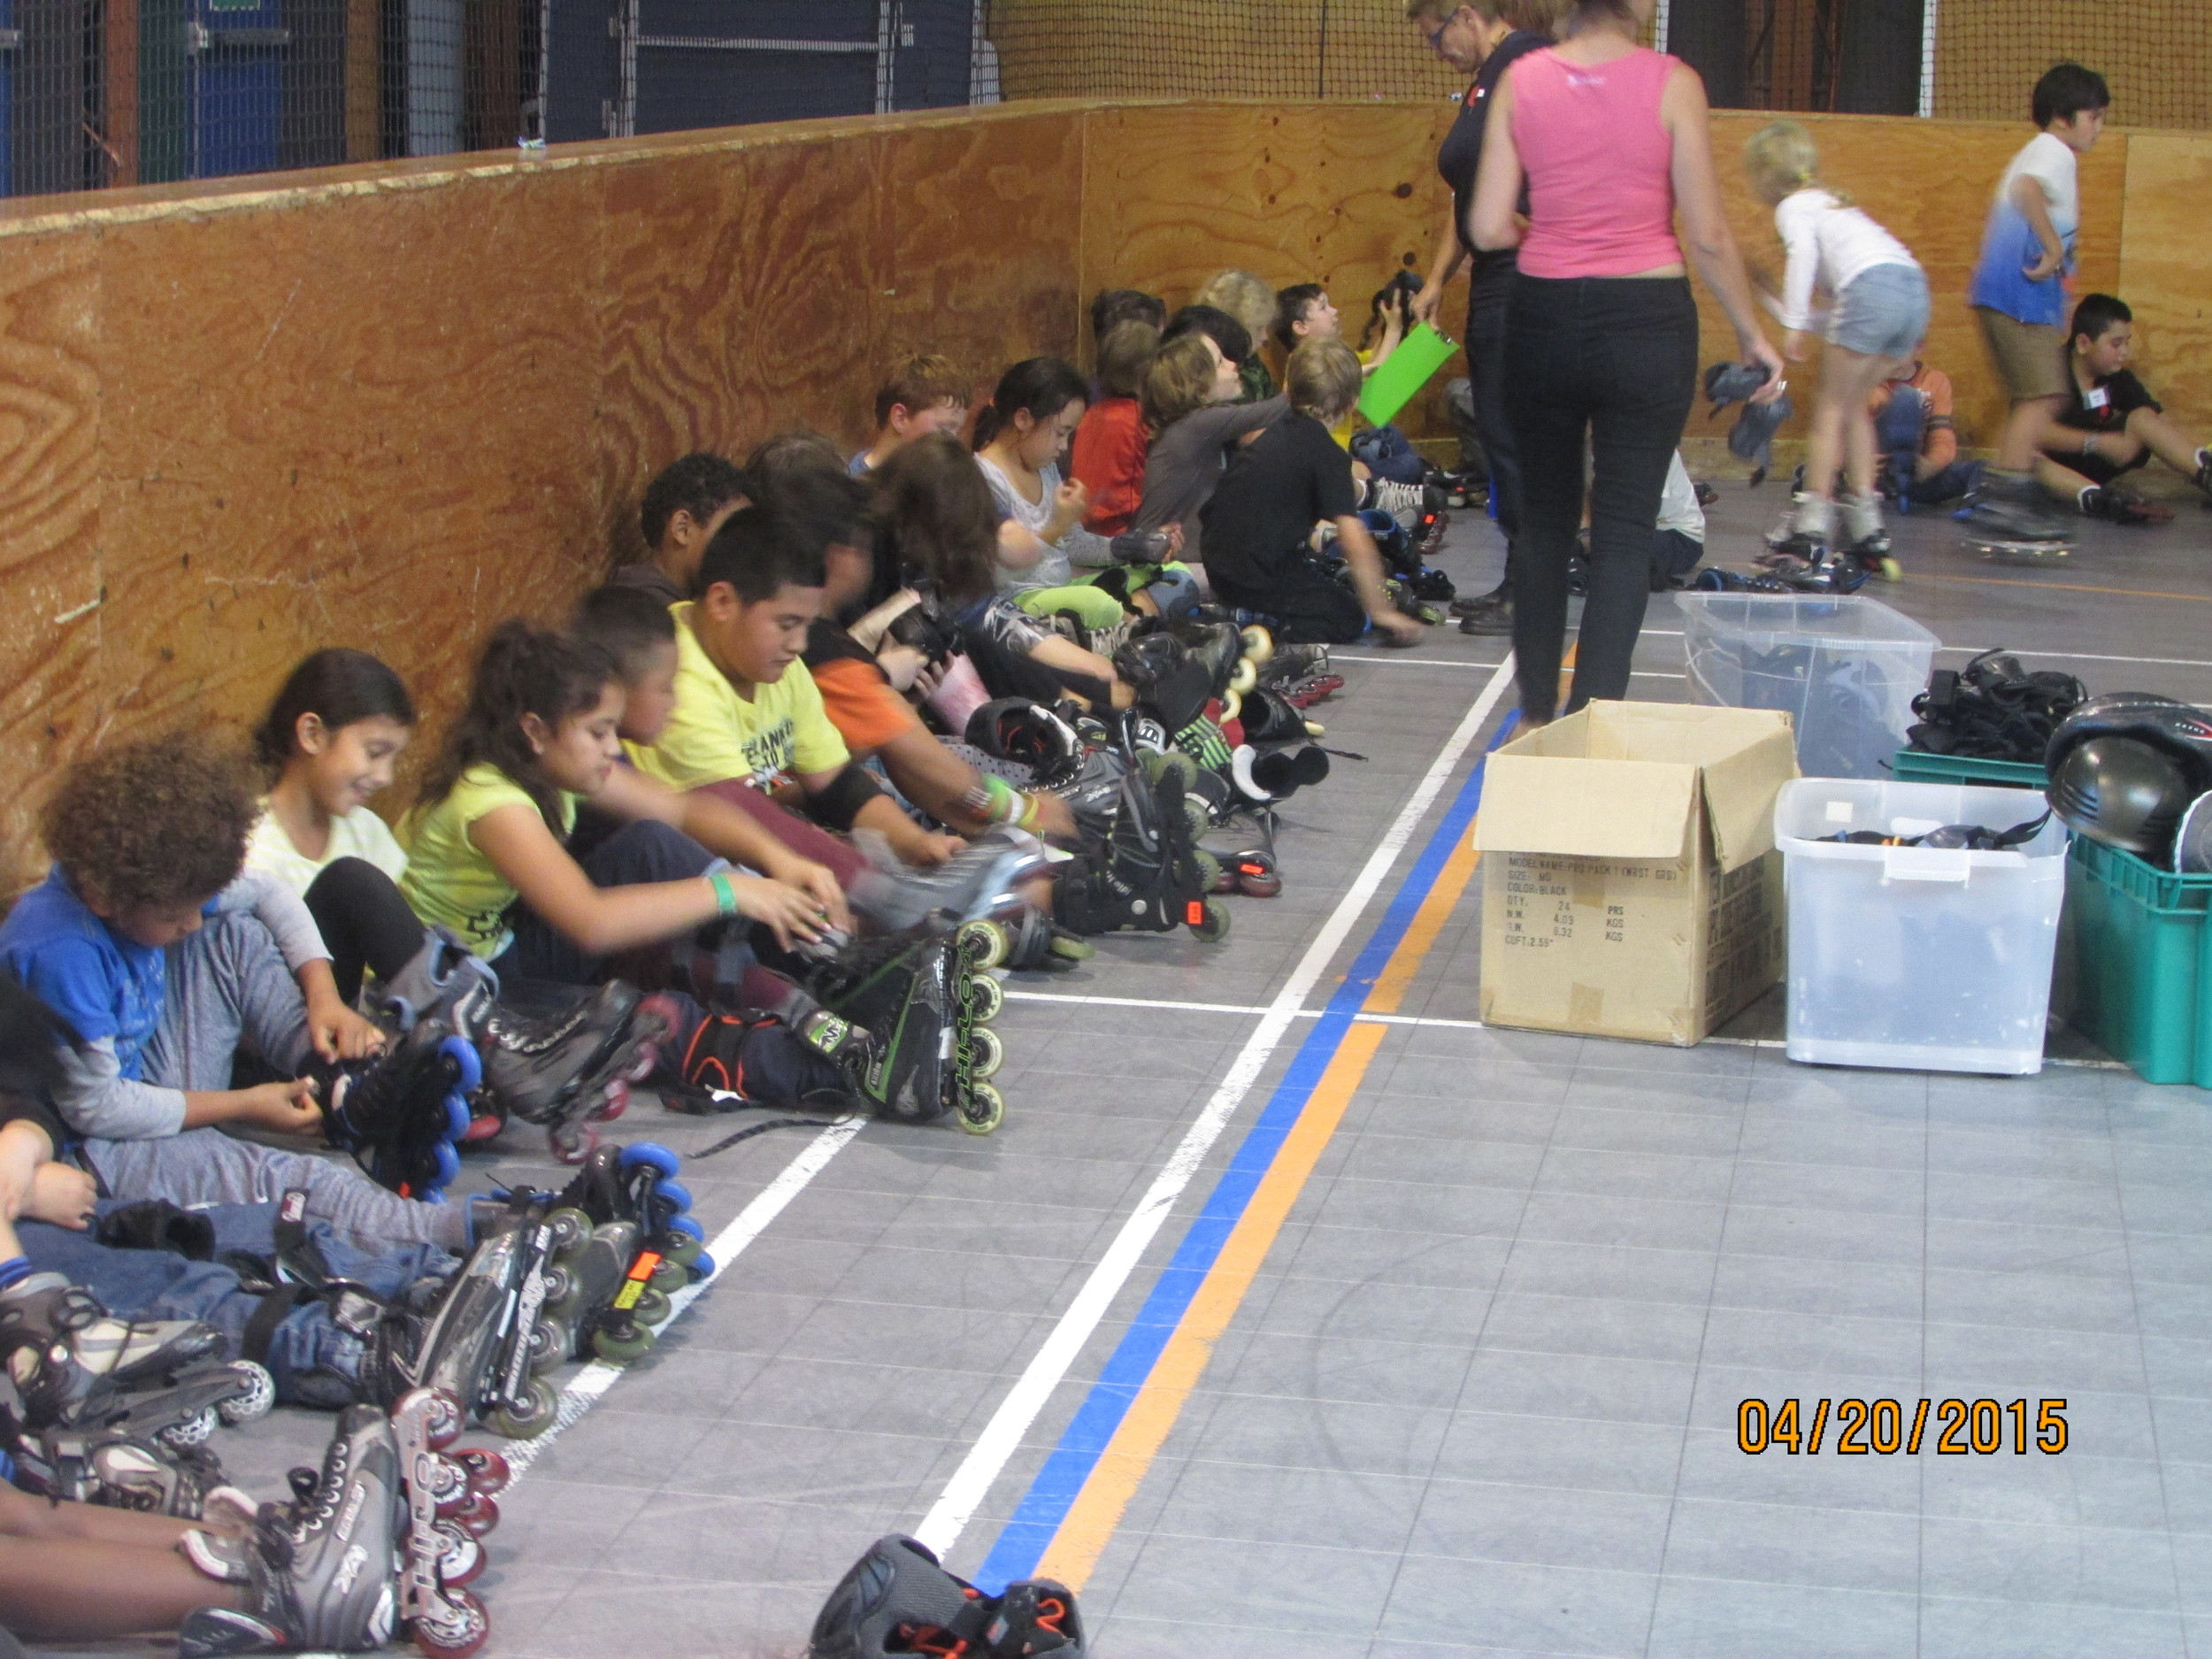 Te Aro School children learning to correctly put on their skates and safety gear.